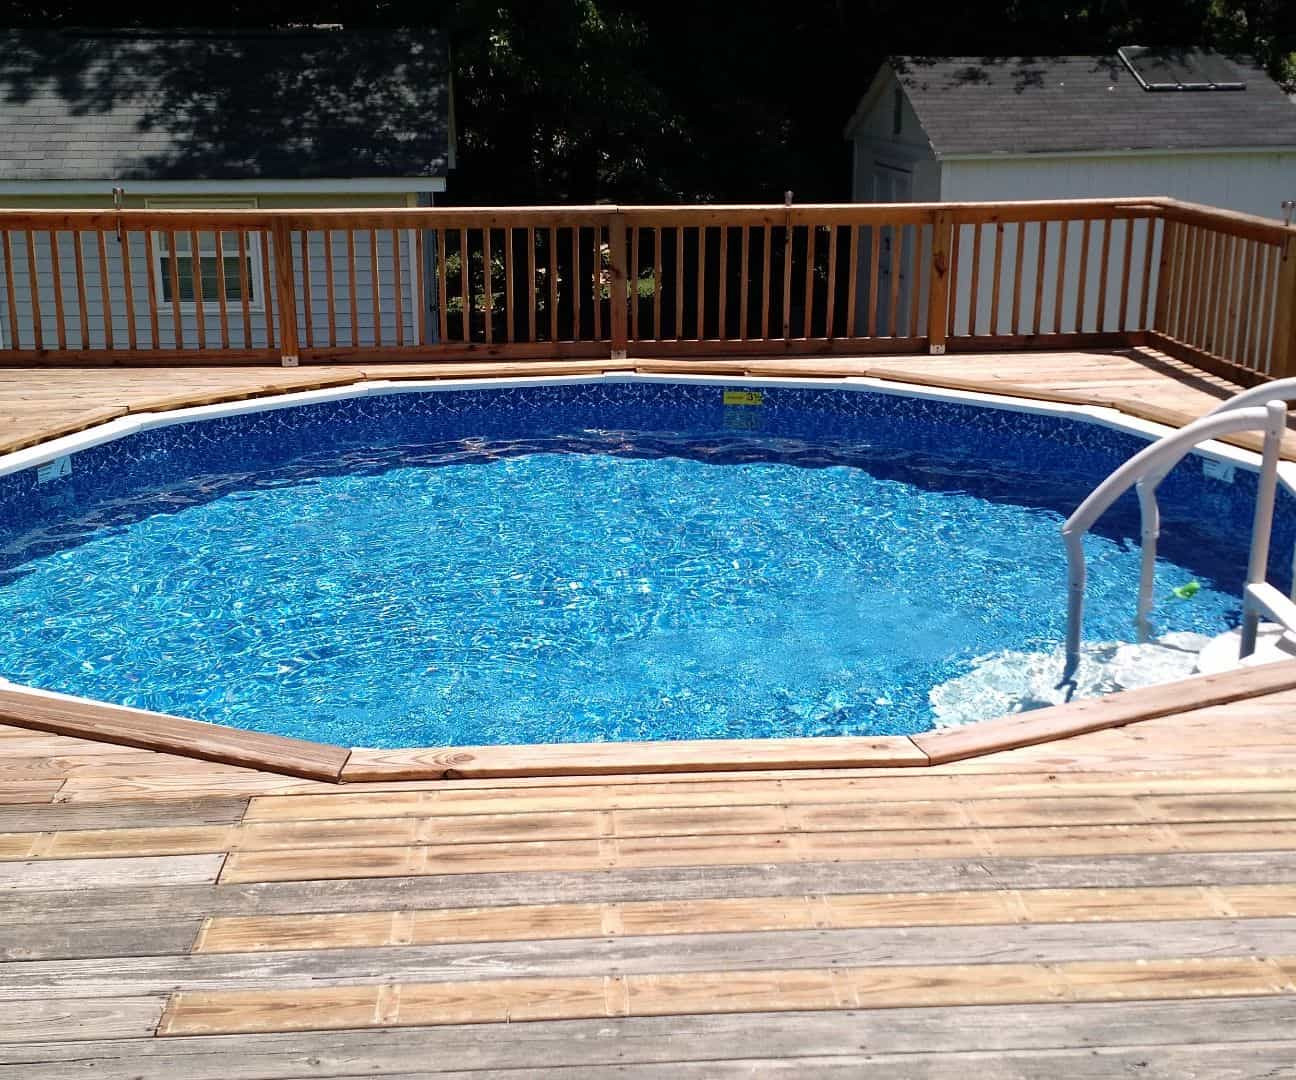 Diy sunken deck pool with a solar heater